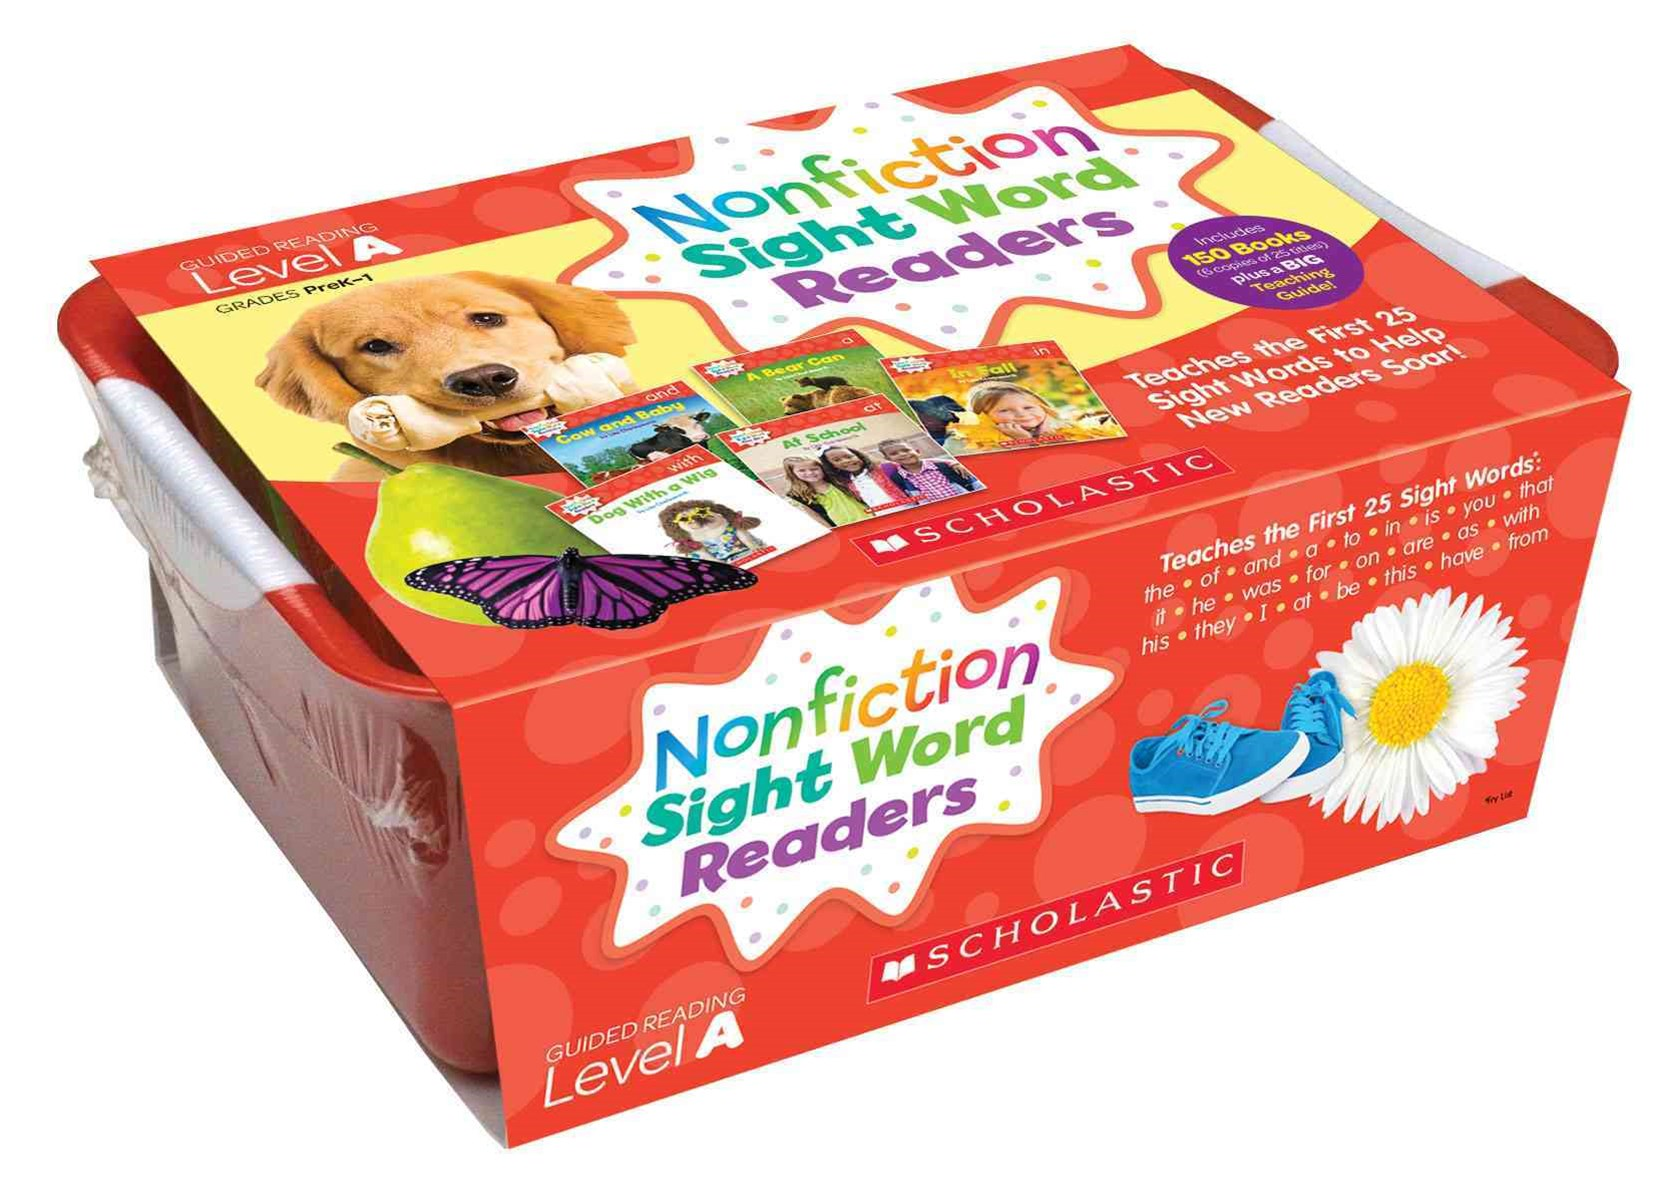 Nonfiction Sight Word Readers Classroom Tub 1